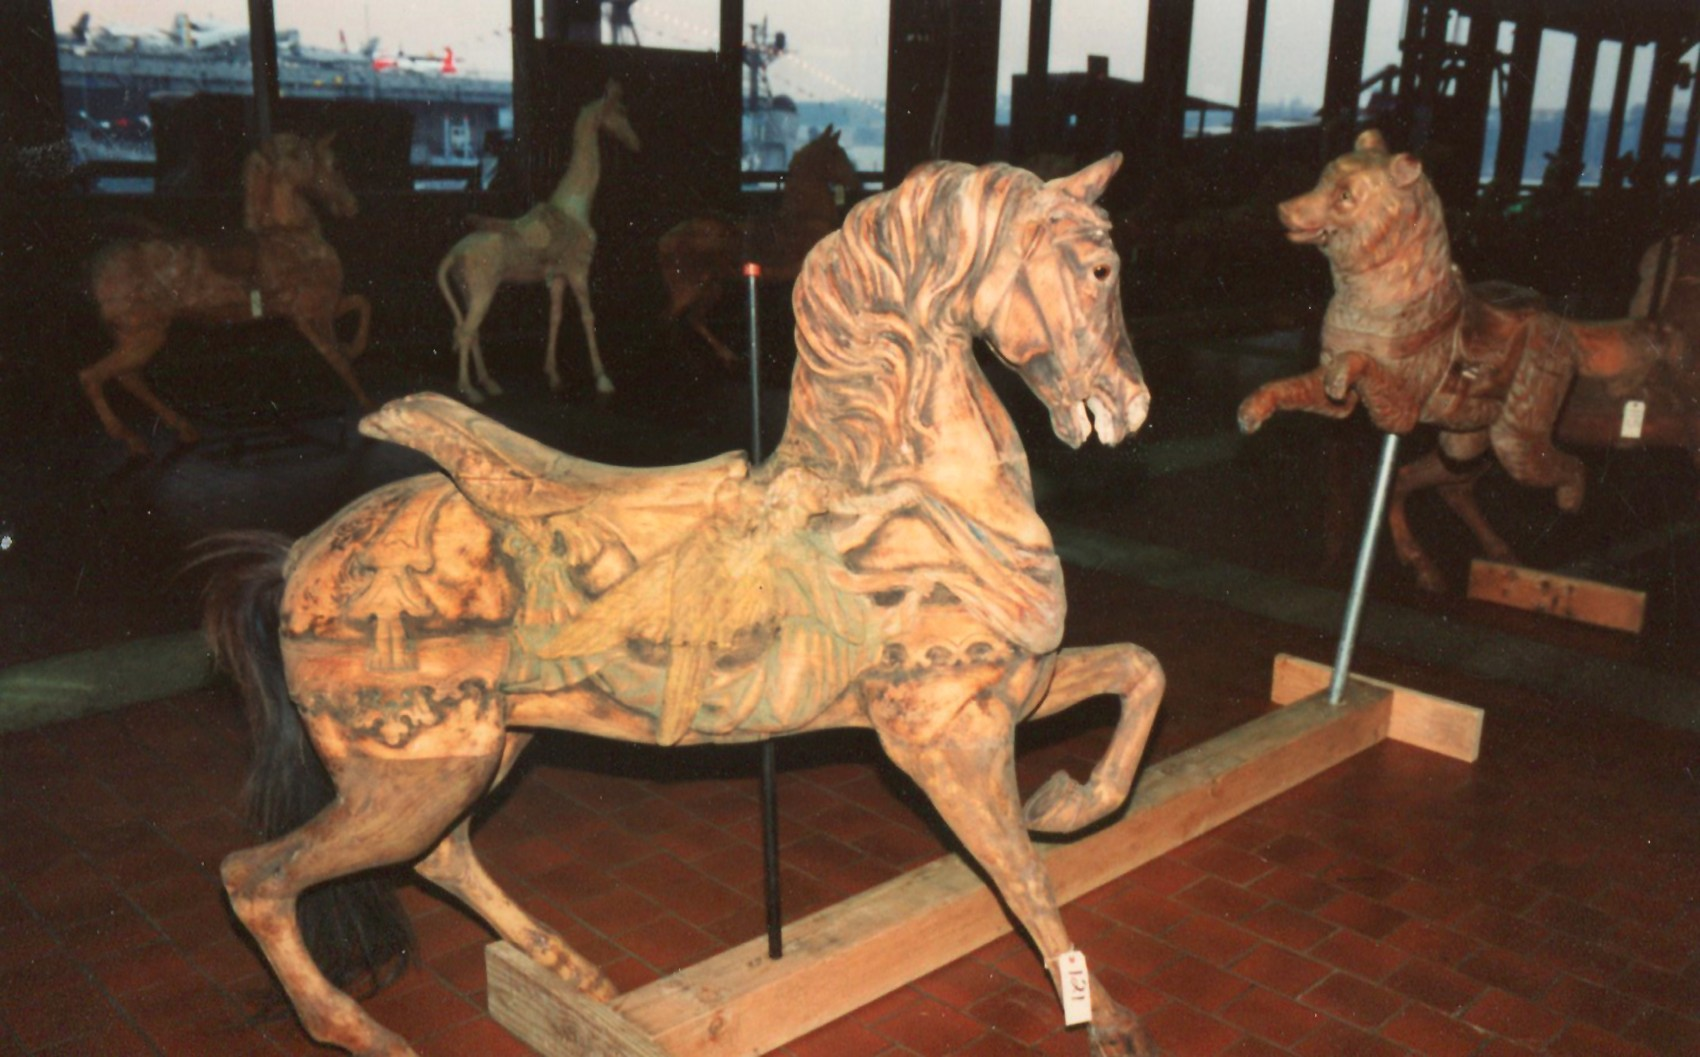 Dentzel-carousel-animals-Great-Escape-Fun-Park-NYC-auction-1989